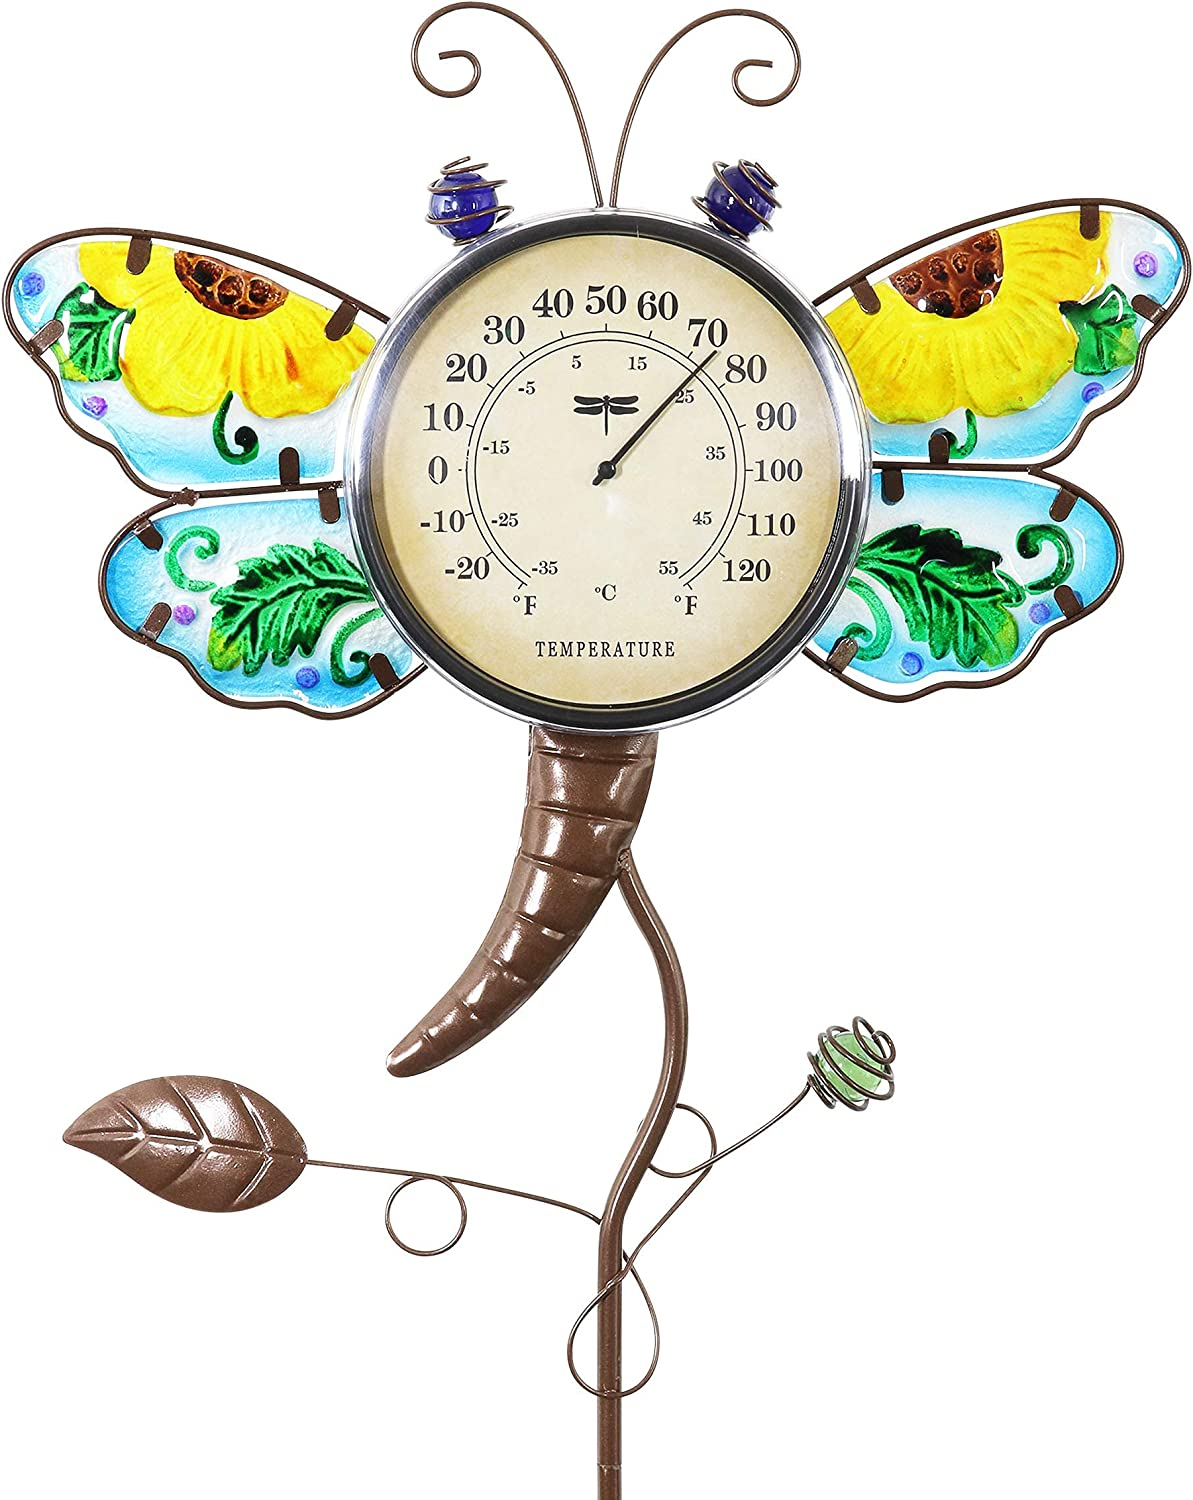 """Dragonfly Thermometer Garden Stake – Dragonfly Decor w/Yellow Flower Glass Wings - Charming Garden Temperature Gauge Decorative Outdoor Thermometer for The Garden, Yard & Patio, 13 x 36"""" JUNJUNNB"""